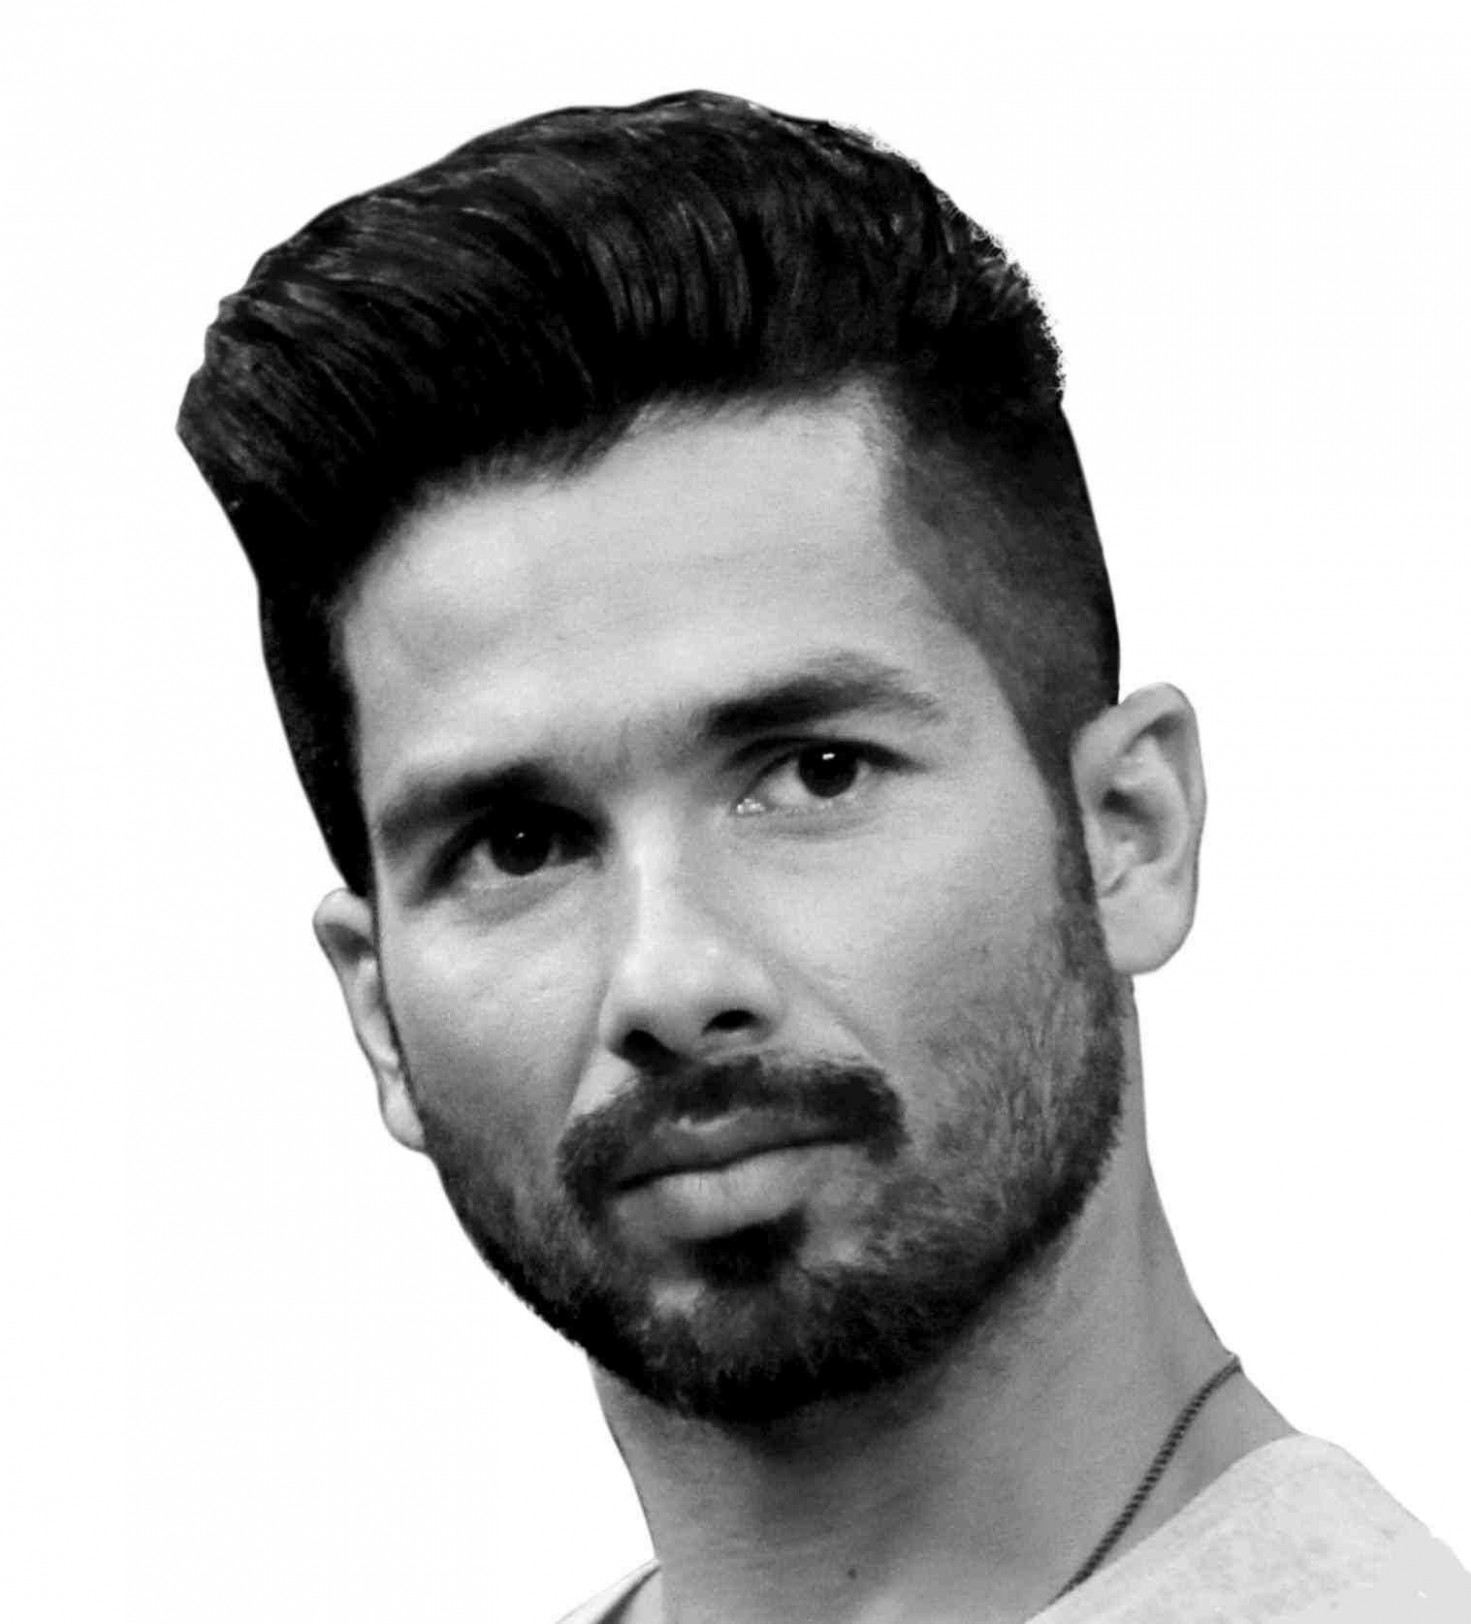 New hairstyles for men 12 normal | men haircut styles, mens